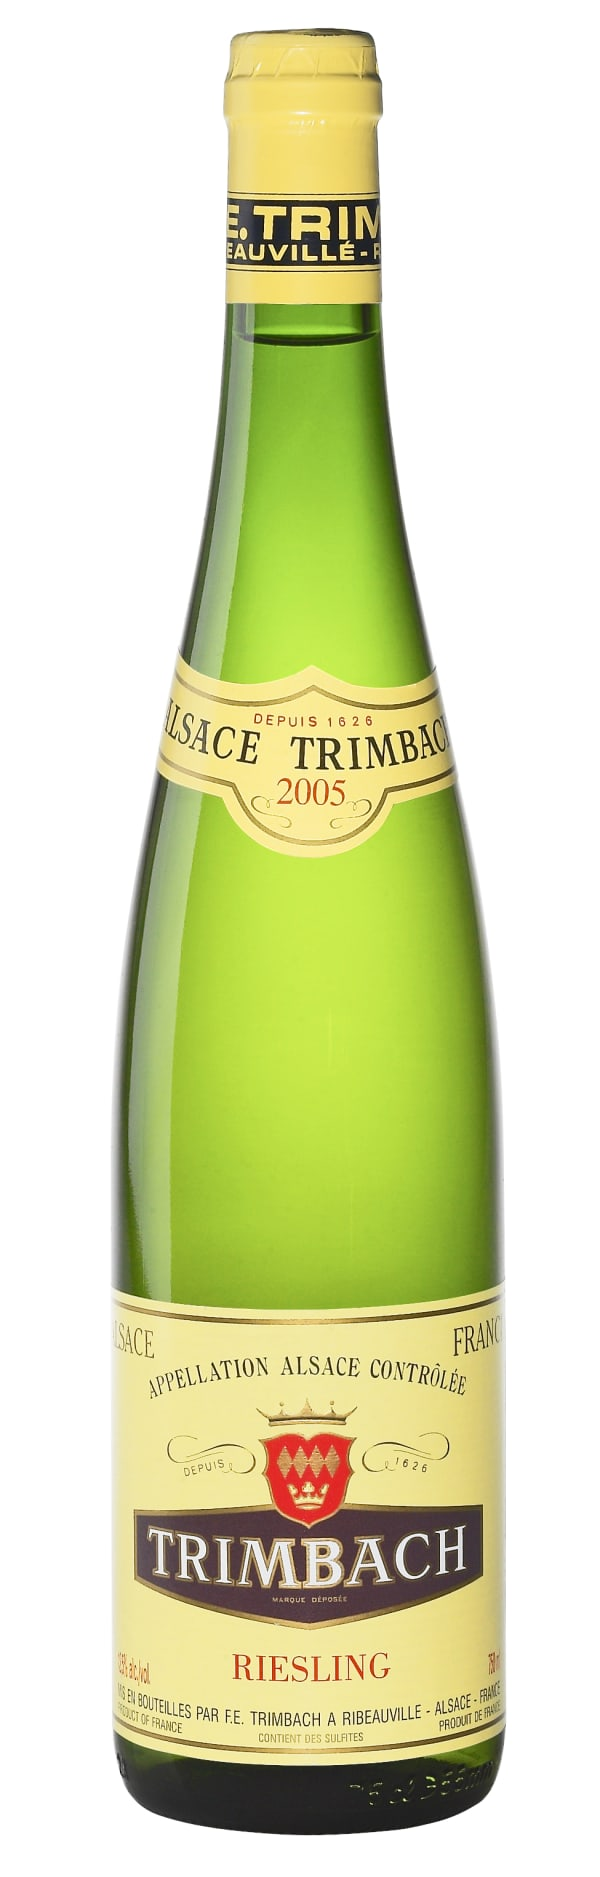 Trimbach Riesling 2014